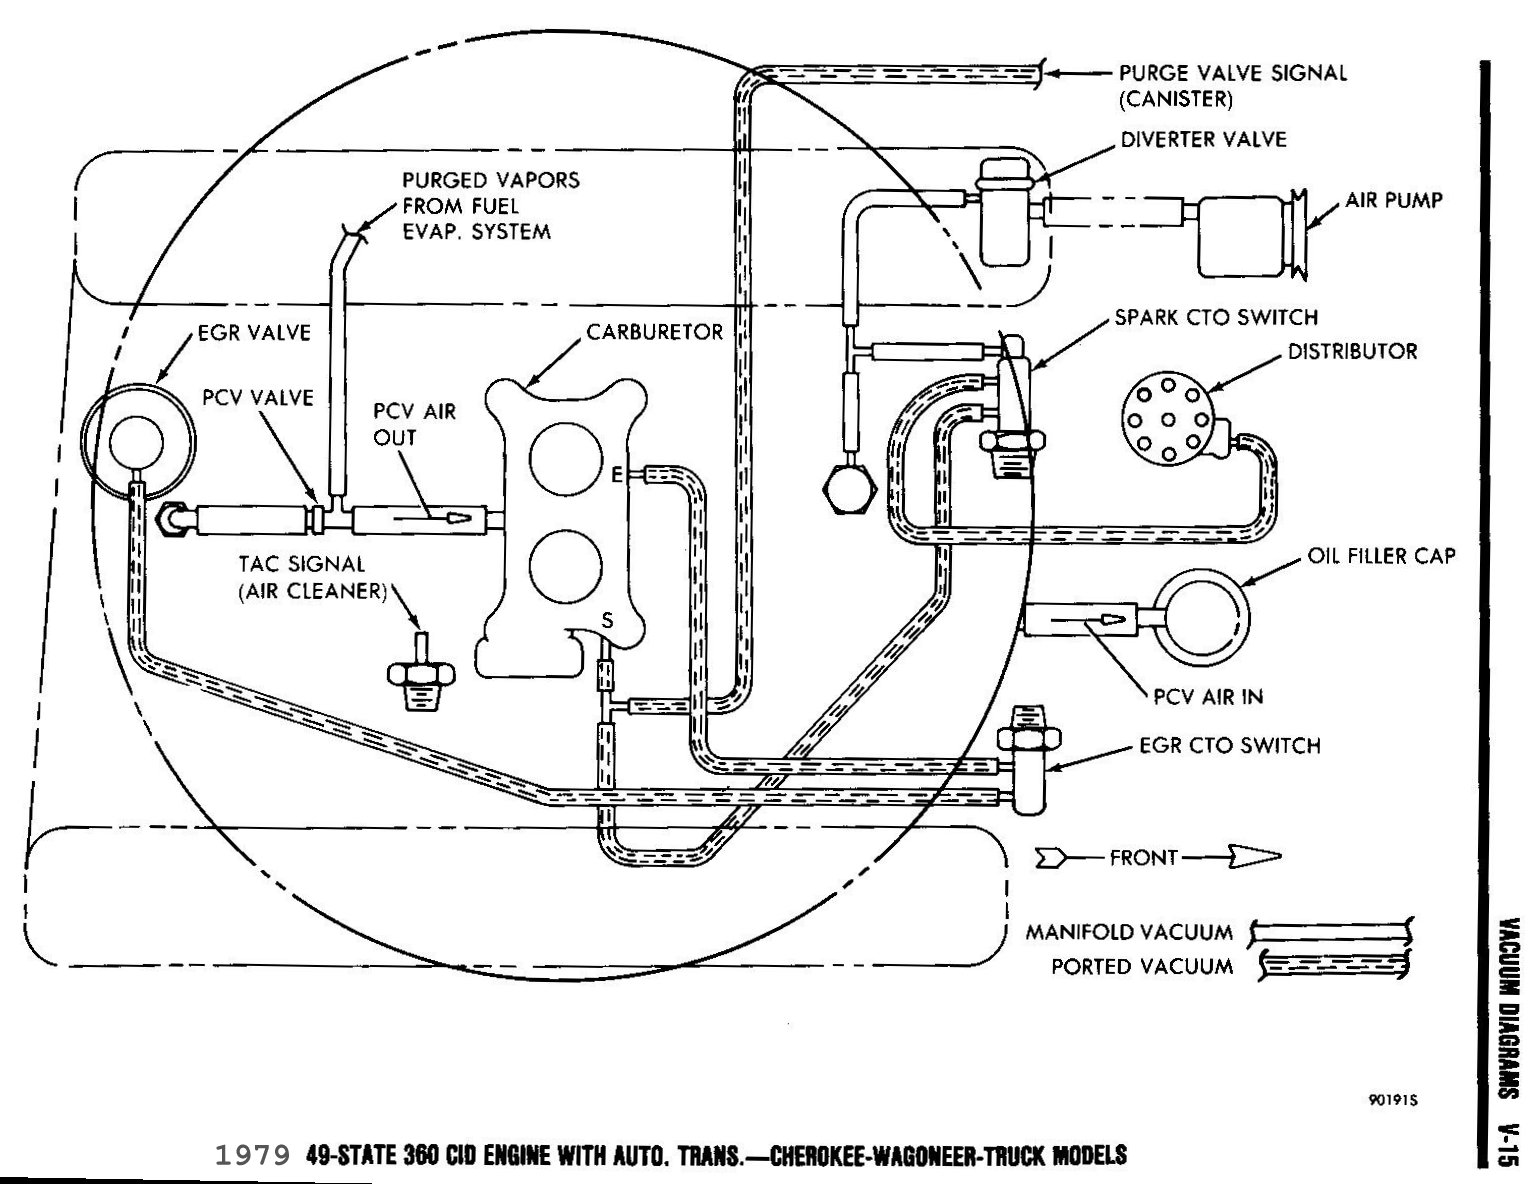 79 FSJ 360_Vacuum tom 'oljeep' collins fsj vacuum layout page 1978 Corvette Wiring Diagram at soozxer.org